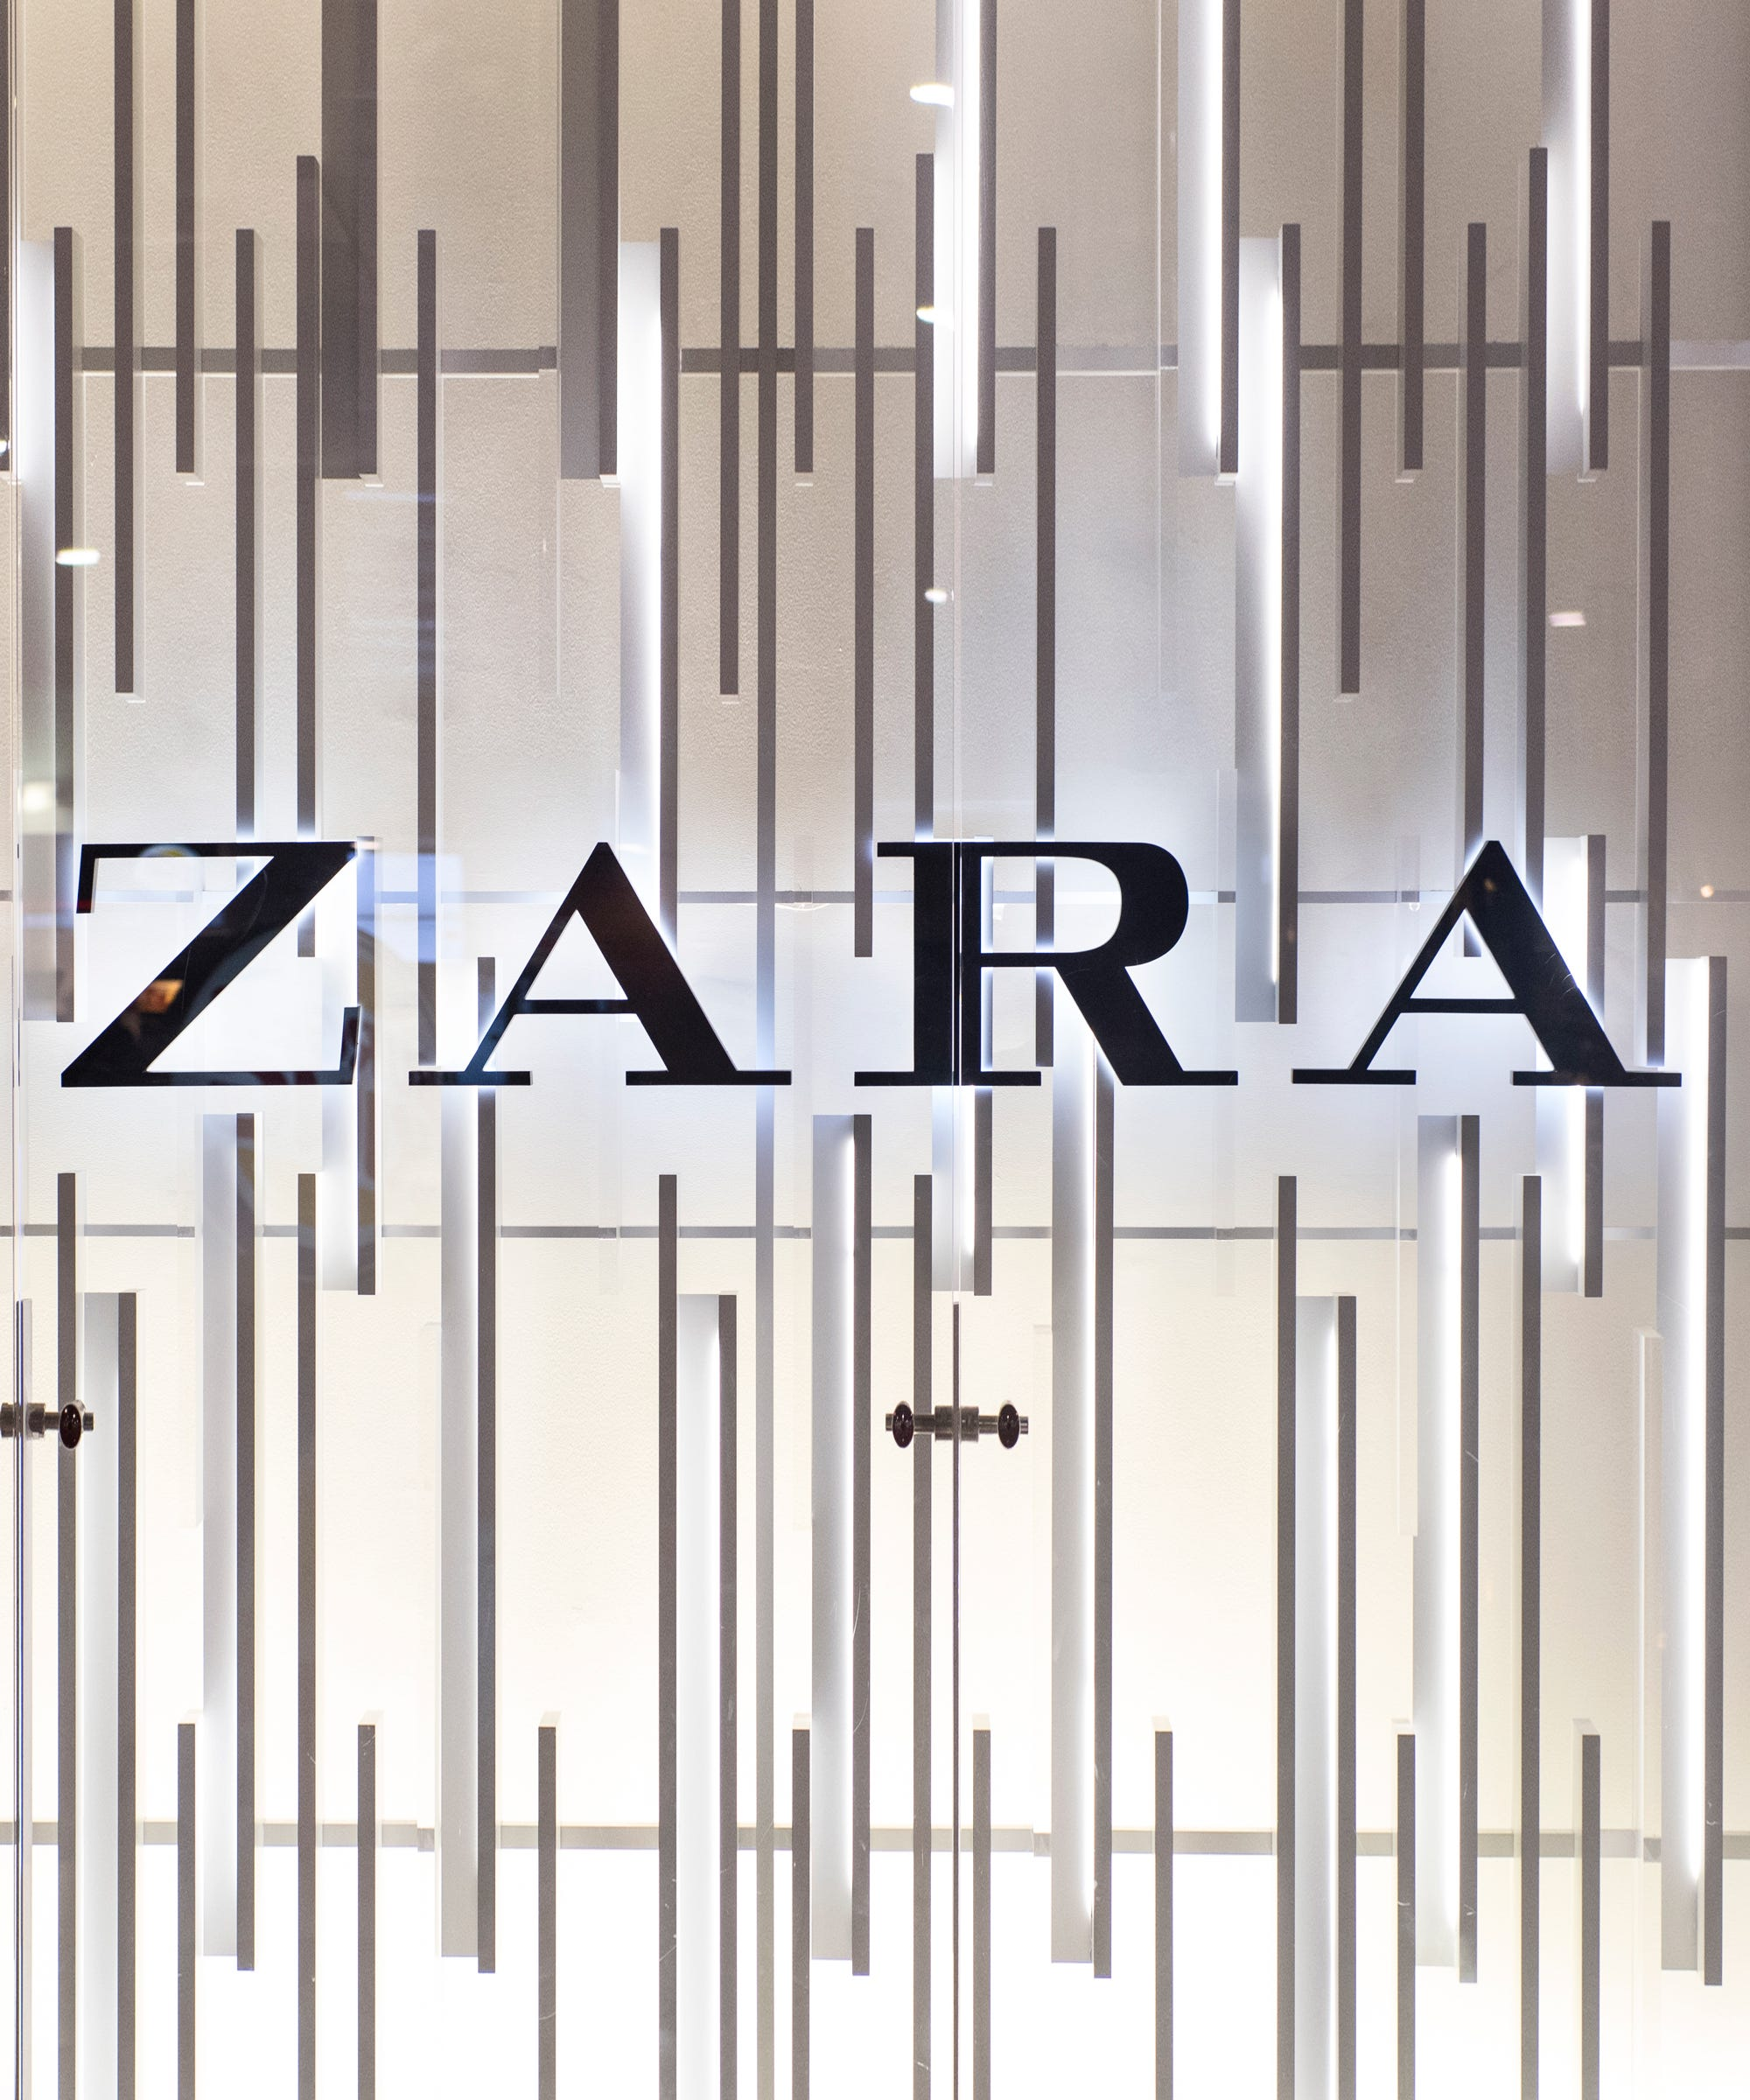 Zara Announces Sustainability Initiatives — But What About Its Factory Workers?